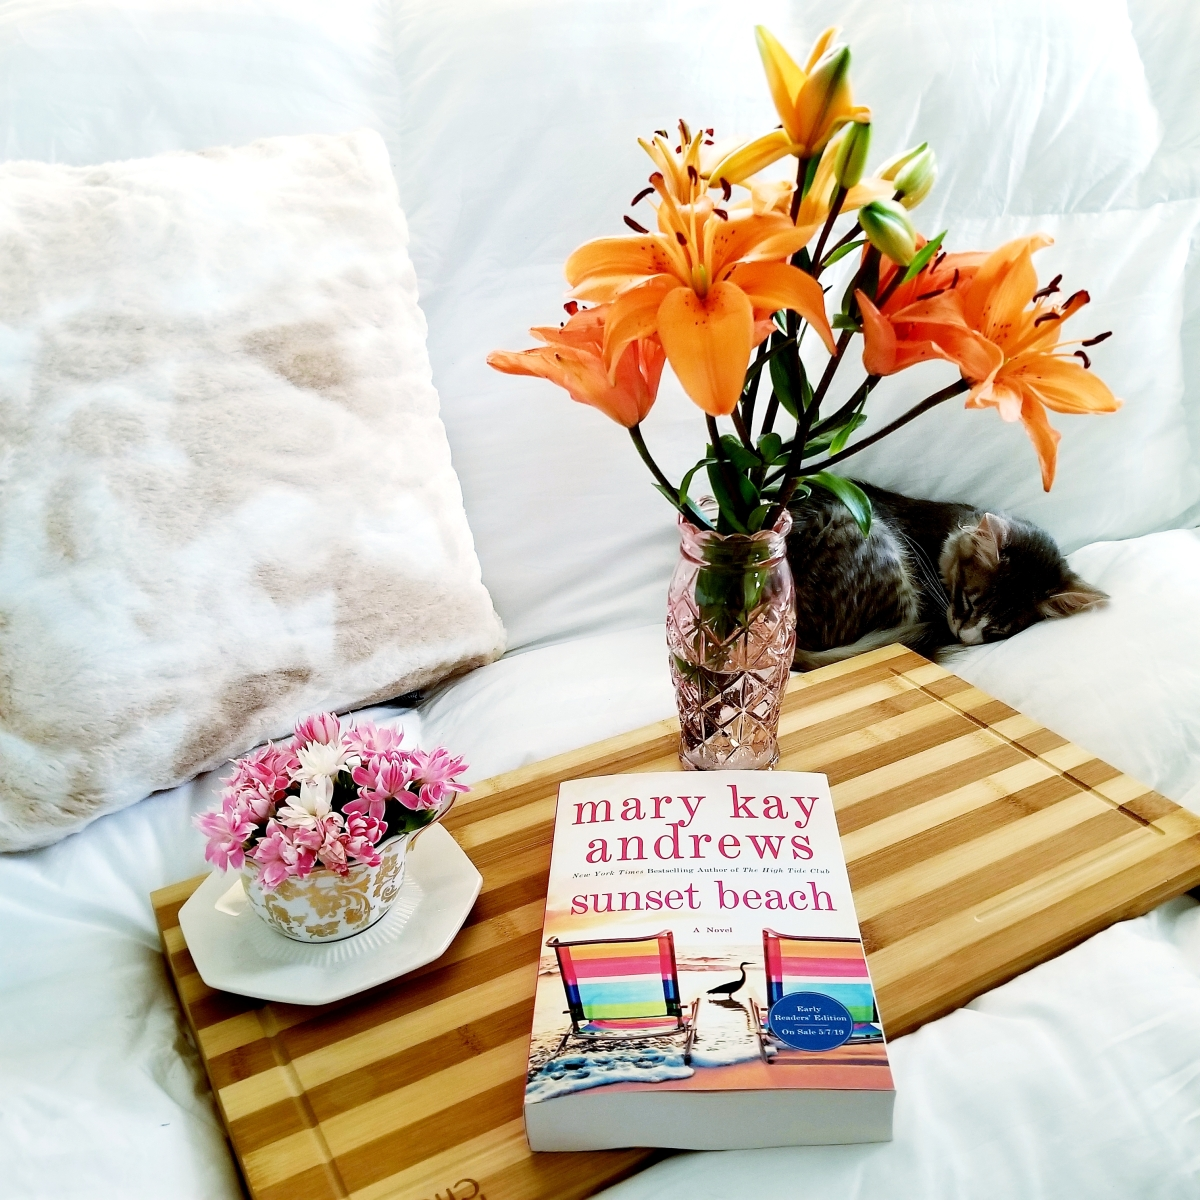 Sunset Beach by Mary Kay Andrews #bookreview #tarheelreader #thrsunsetbeach @mkayandrews @stmartinspress #sunsetbeach